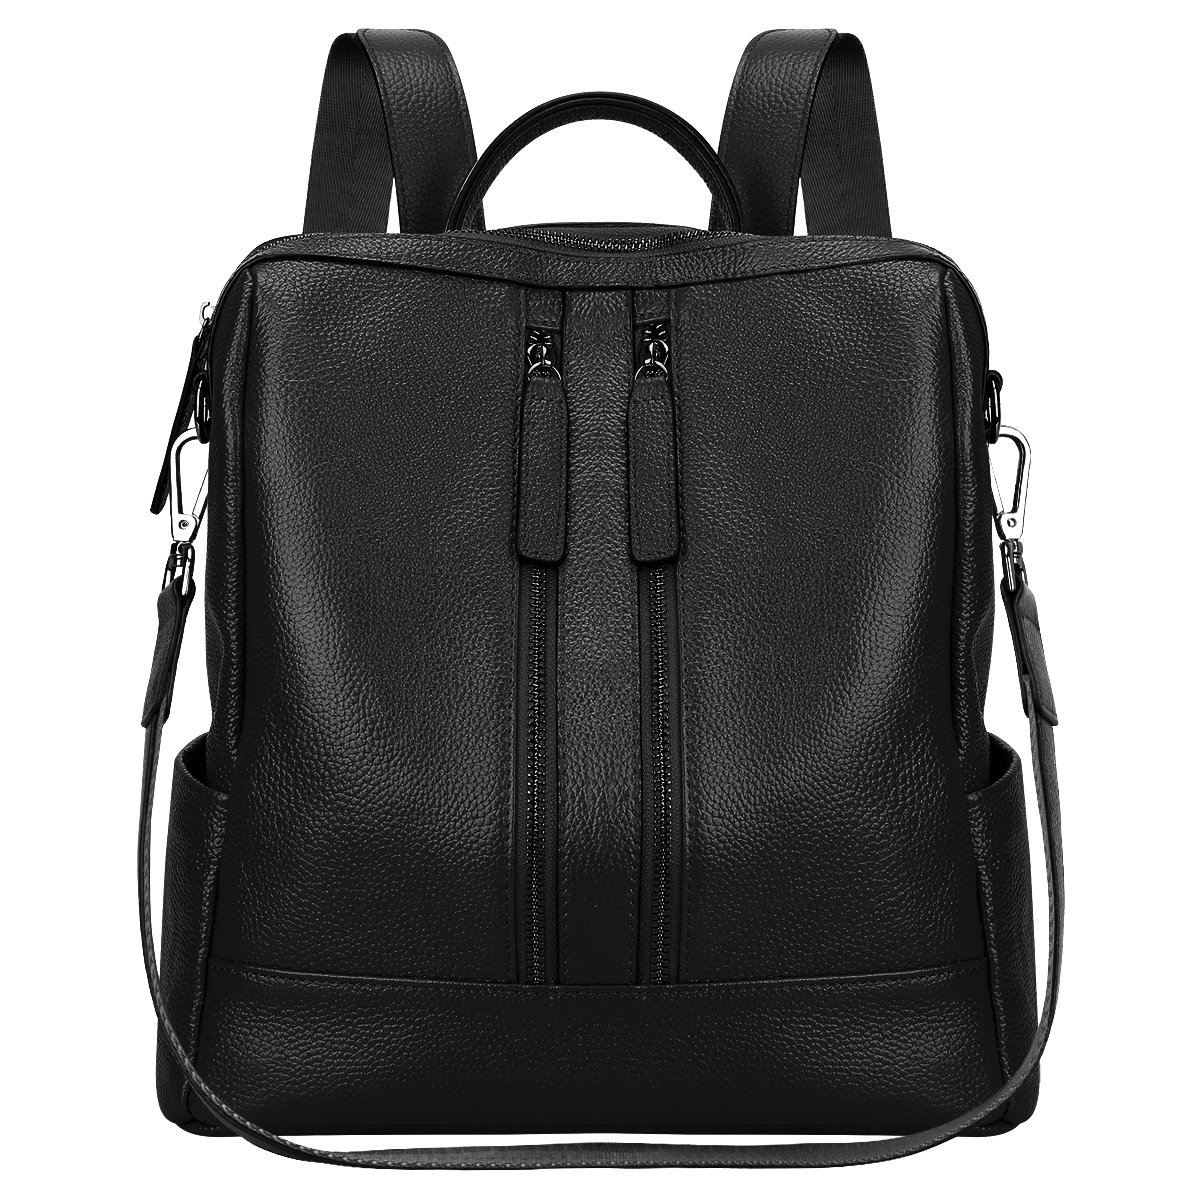 df76931ff7bc Amazon.com  S-ZONE Women Genuine Leather Backpack Casual Shoulder Bag Purse  Medium (Black)  Clothing